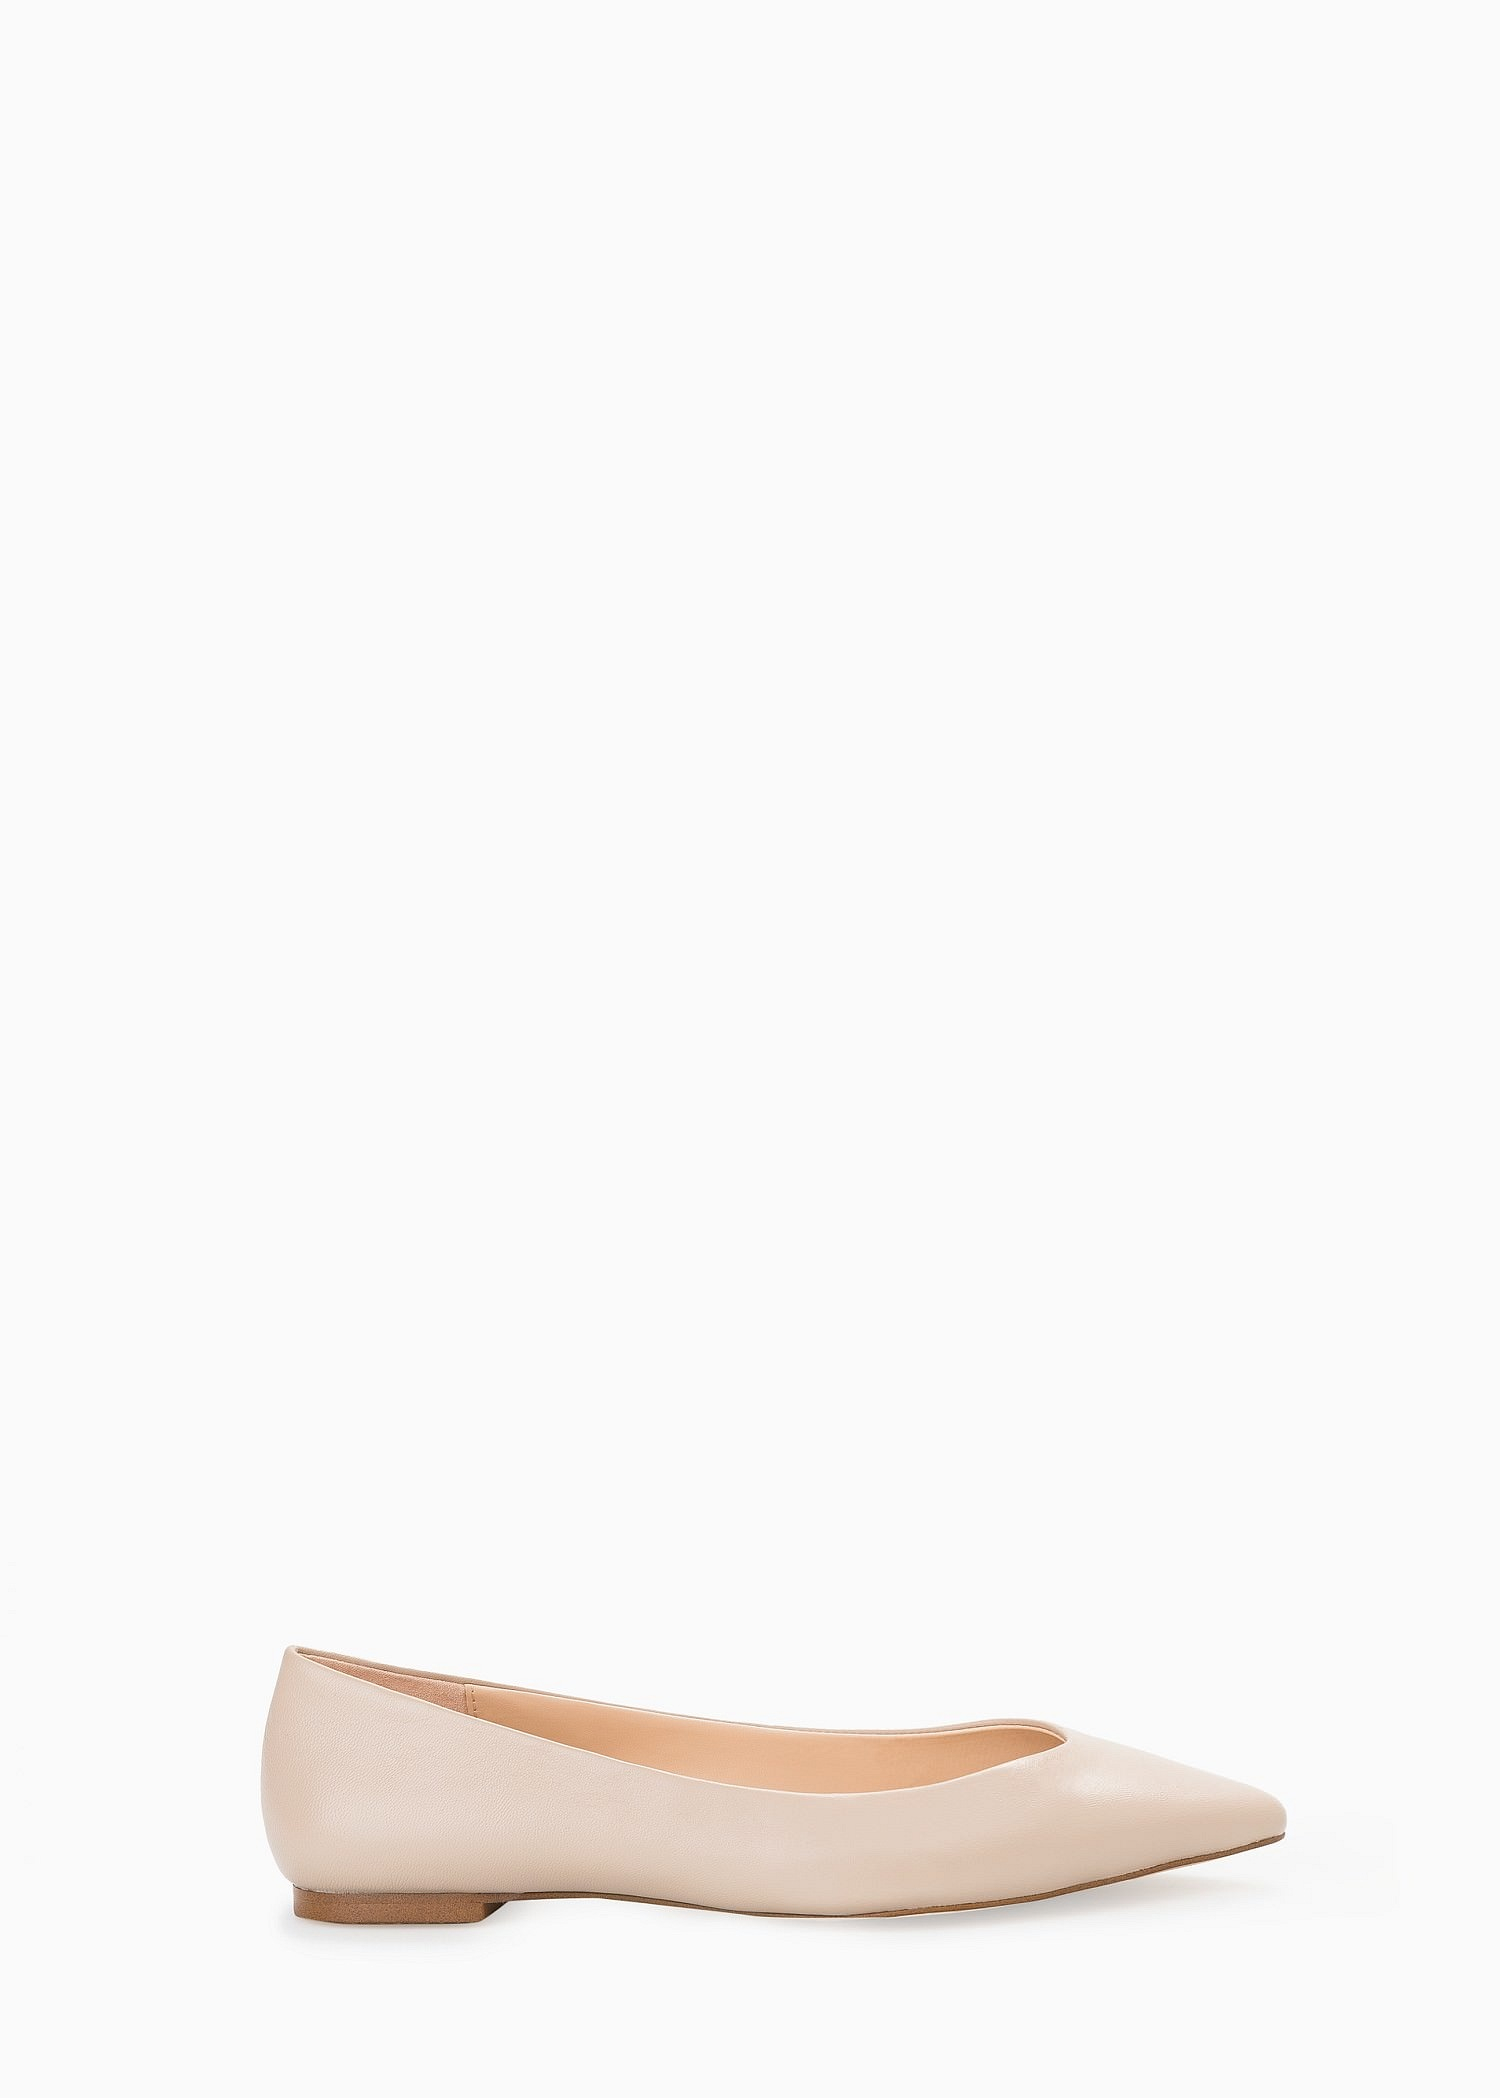 701fde2545 Lyst - Mango Leather Flat Shoes in White